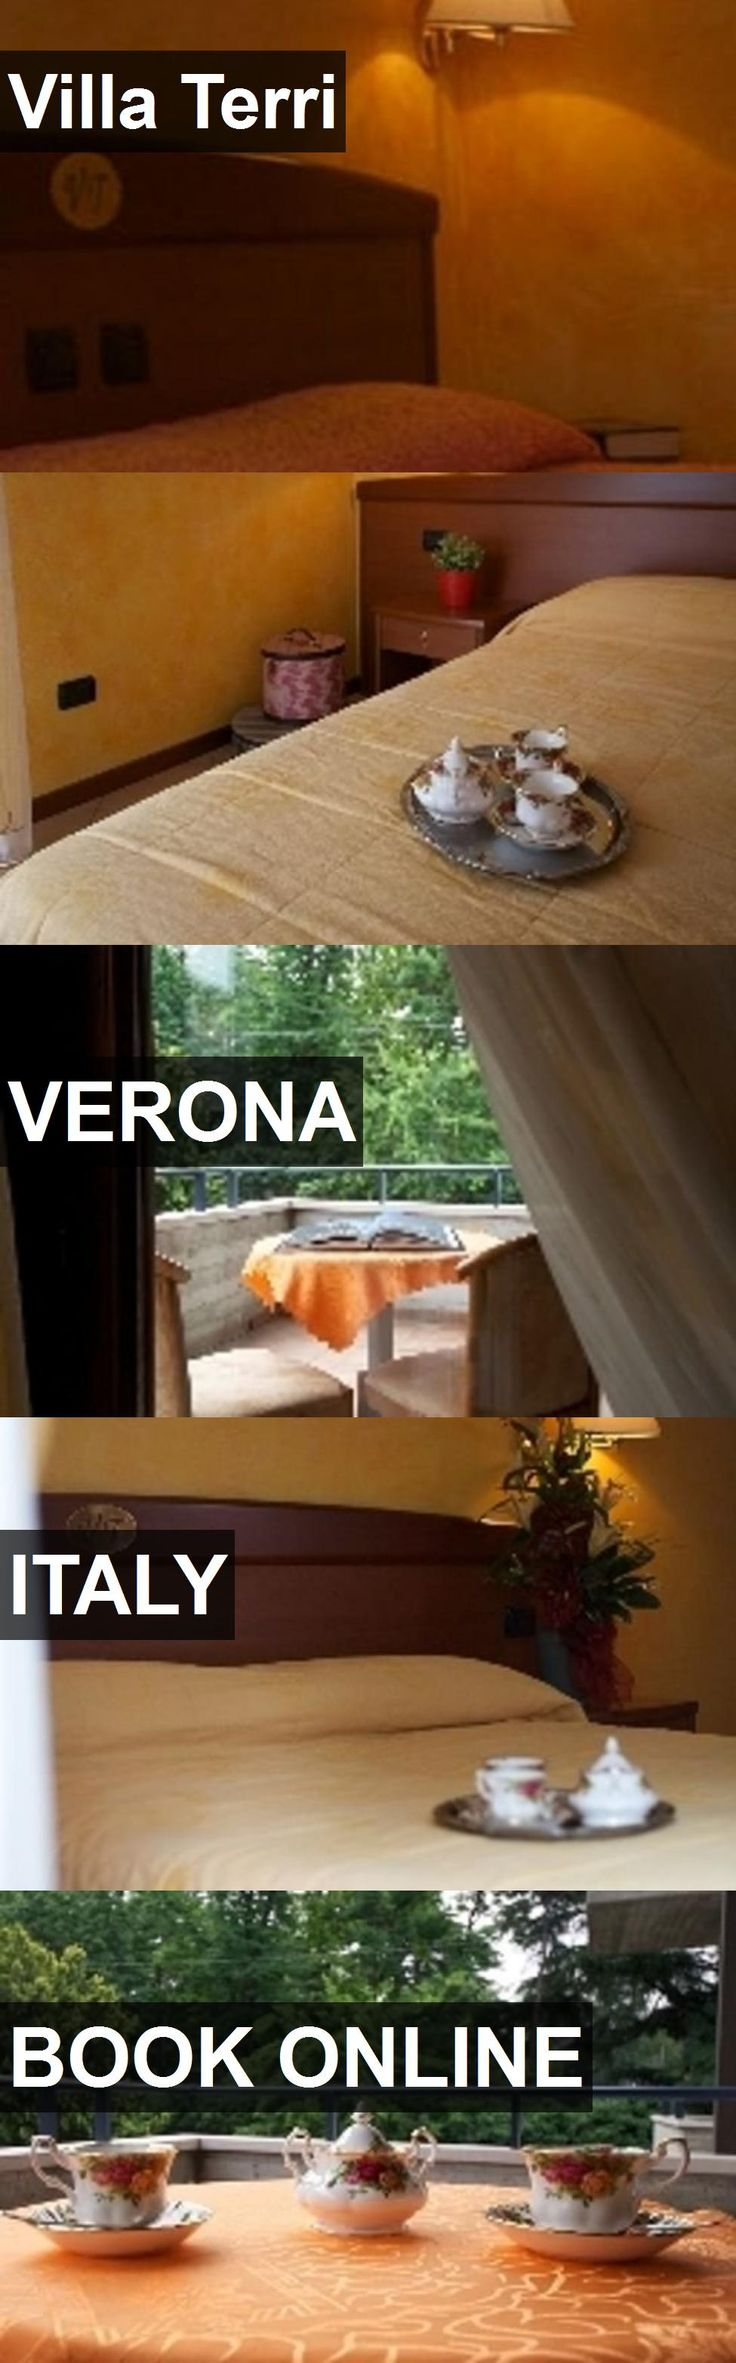 Hotel Villa Terri in Verona, Italy. For more information, photos, reviews and best prices please follow the link. #Italy #Verona #VillaTerri #hotel #travel #vacation